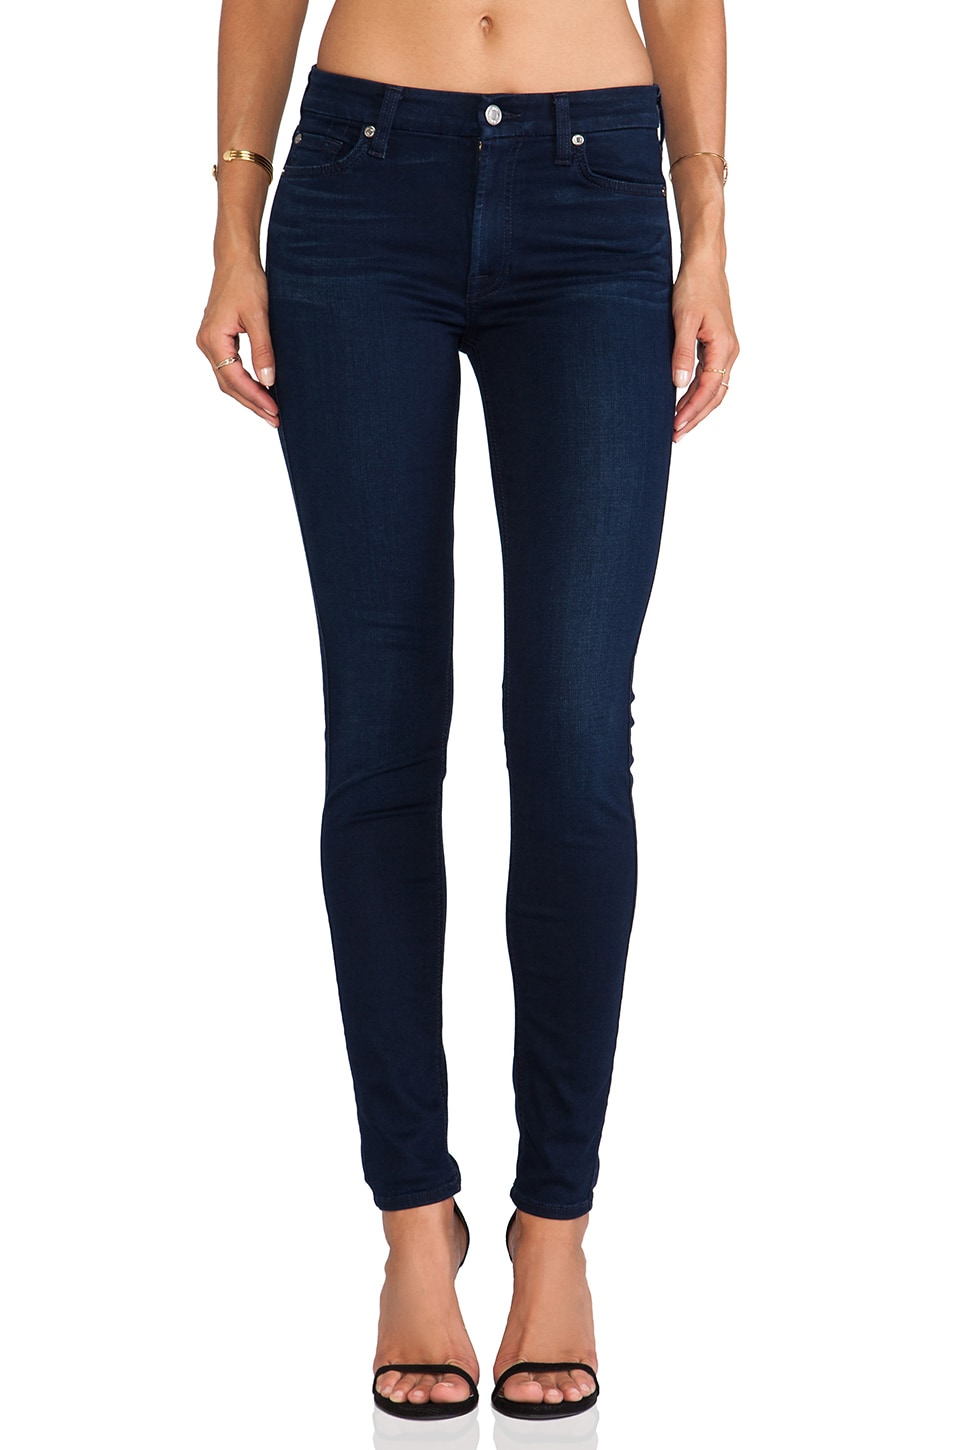 7 For All Mankind The Midrise Skinny with Contour in Slim Illusion Luxe Rich Blue